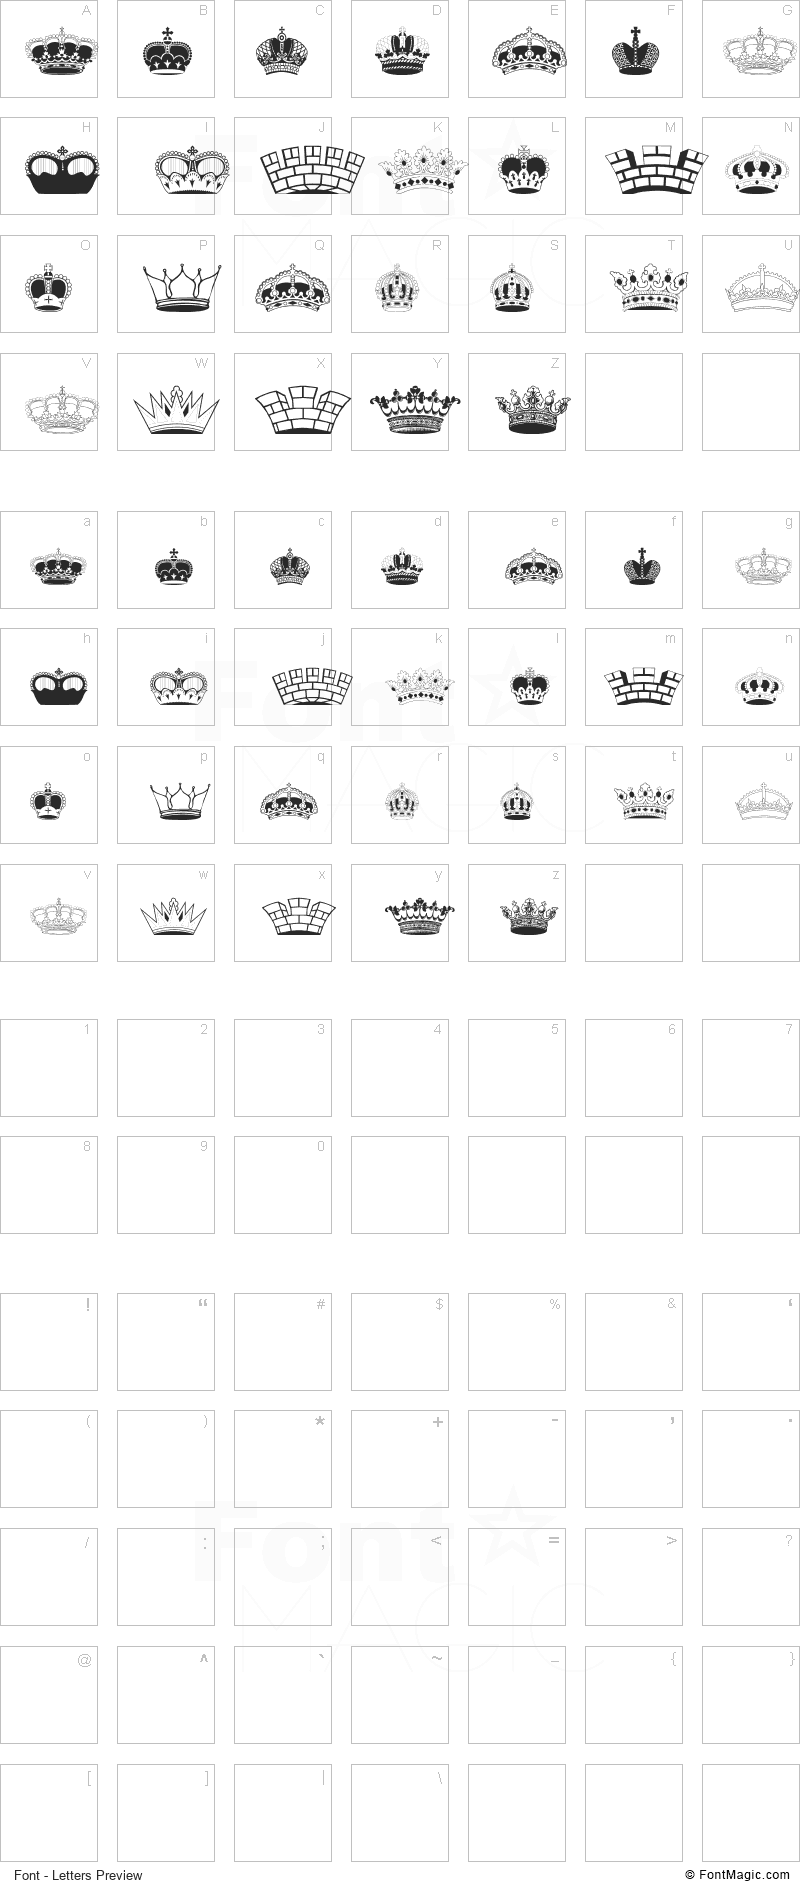 Intellecta Crowns Font - All Latters Preview Chart